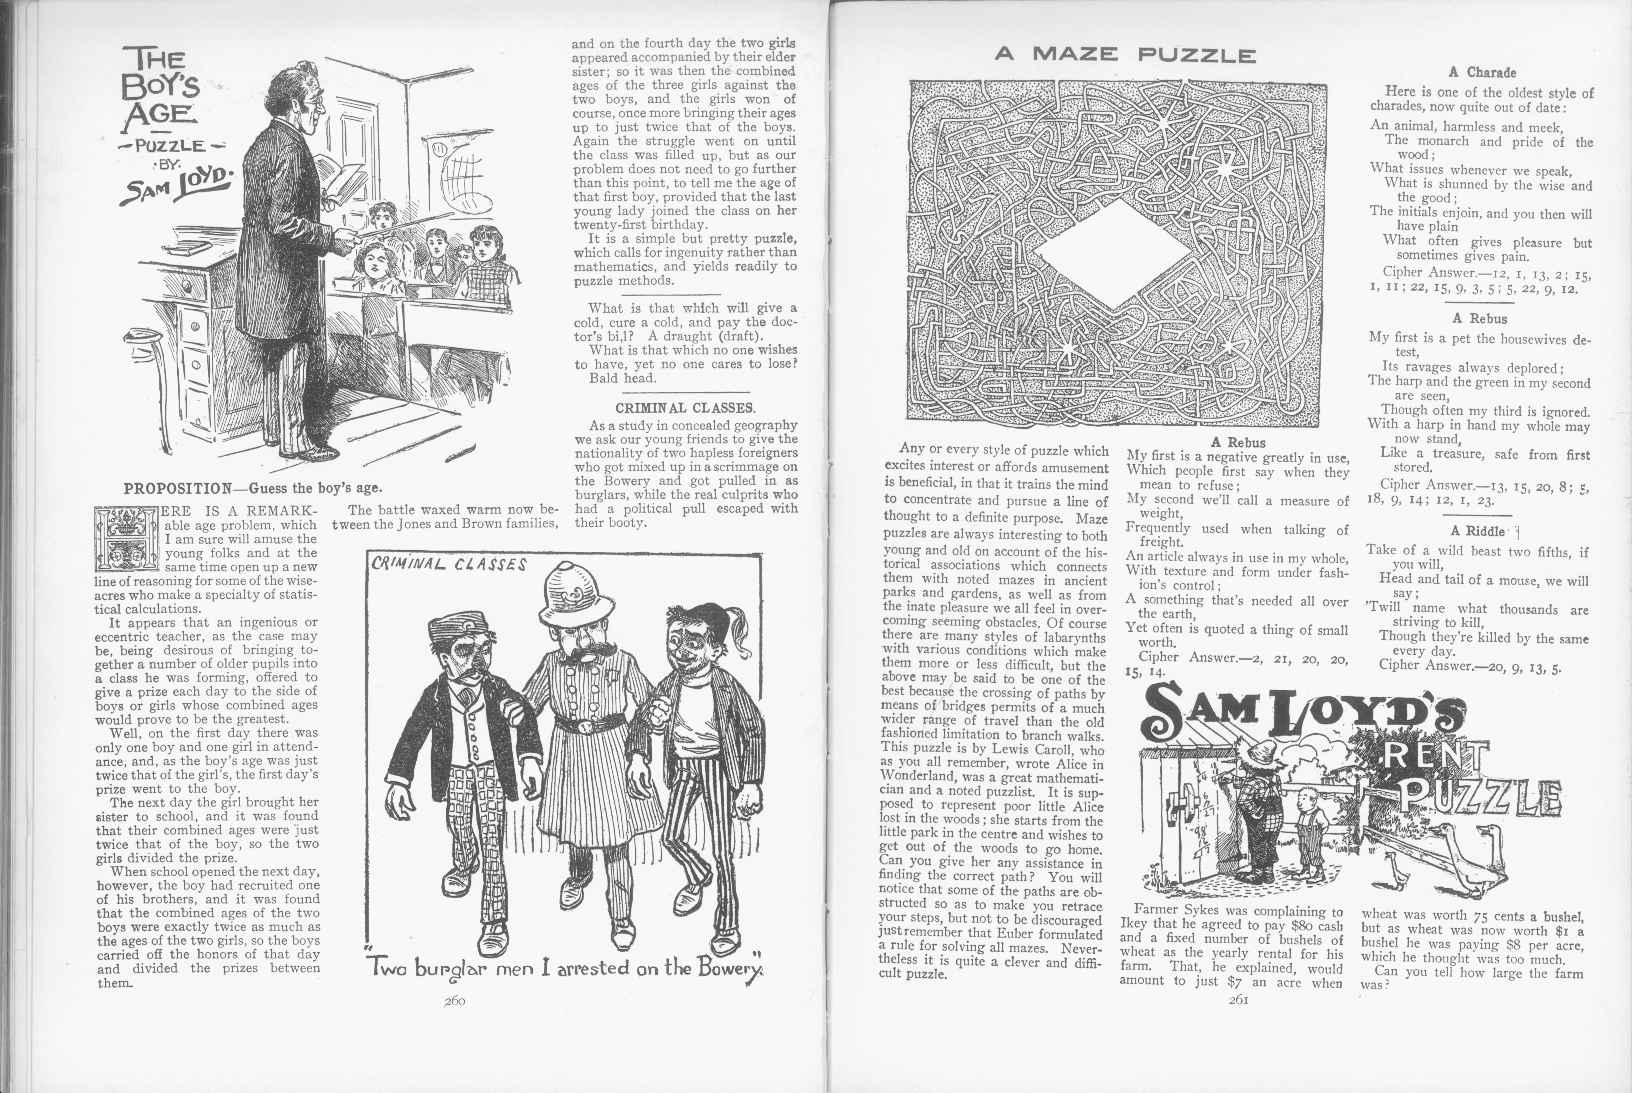 Sam Loyd - Cyclopedia of Puzzles - page 260-261